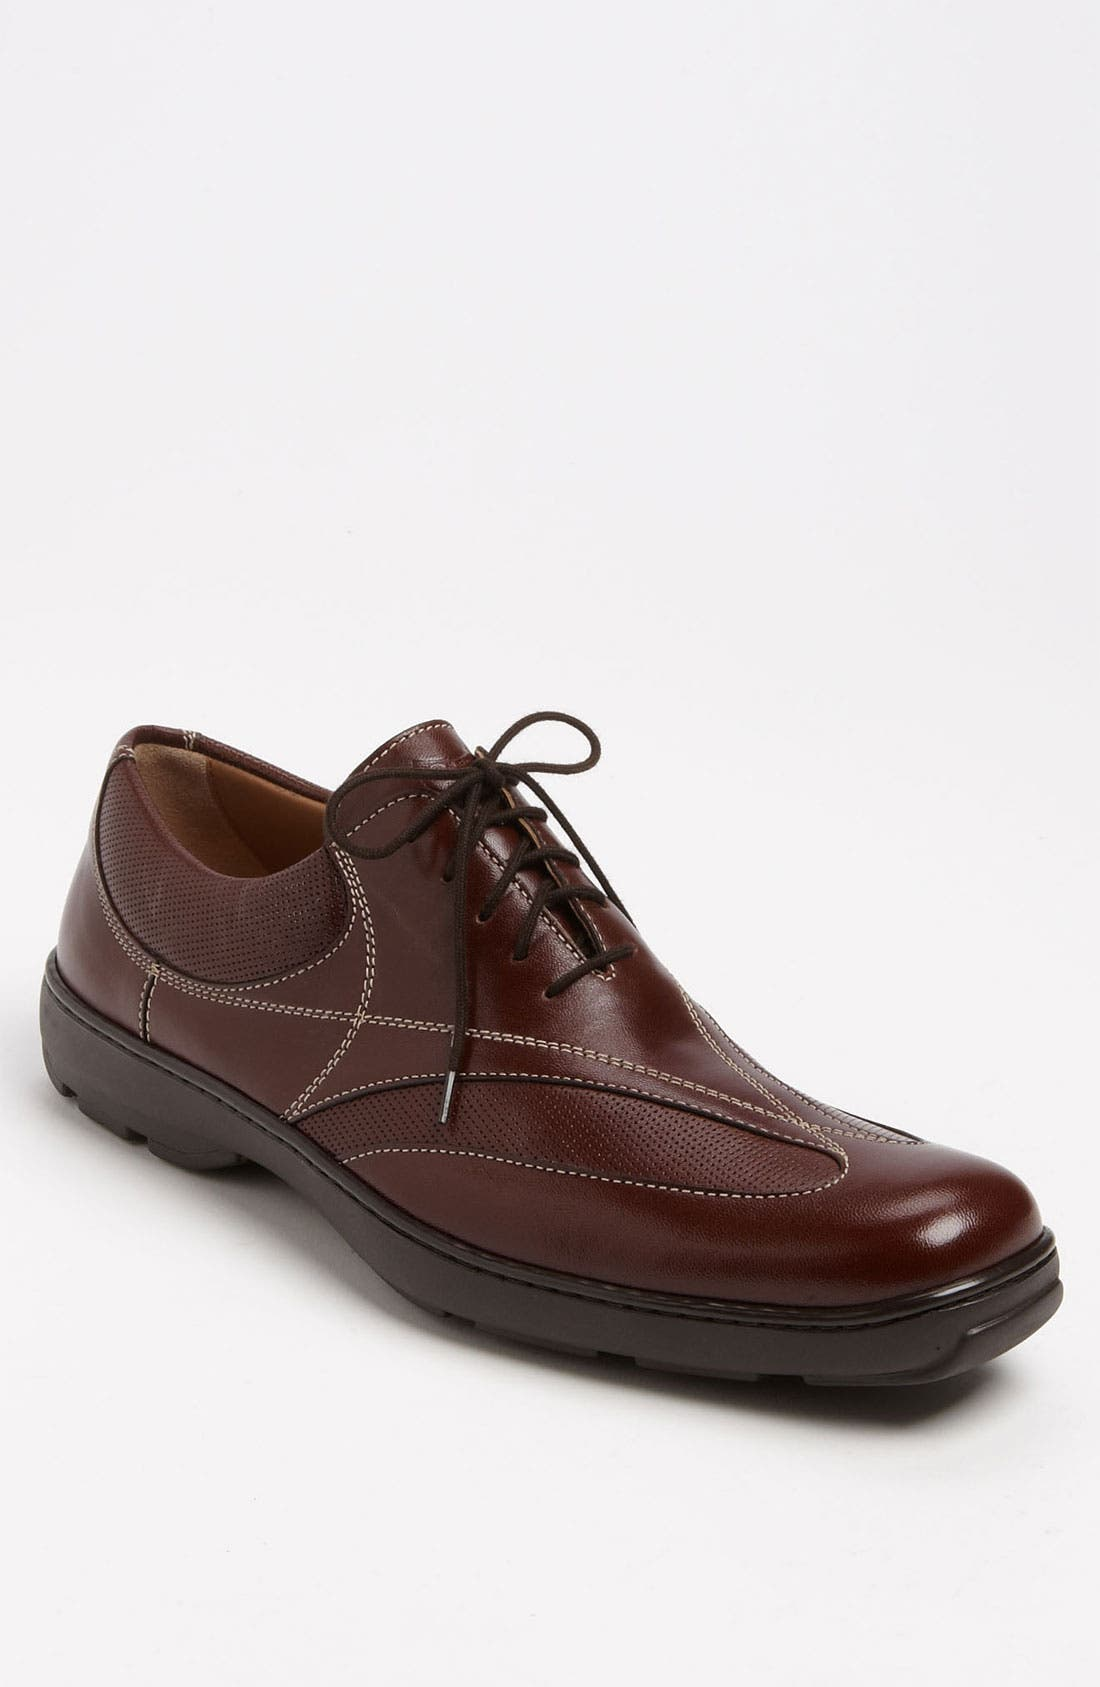 Main Image - MICHAEL TOSCHI SPORTY OXFORD